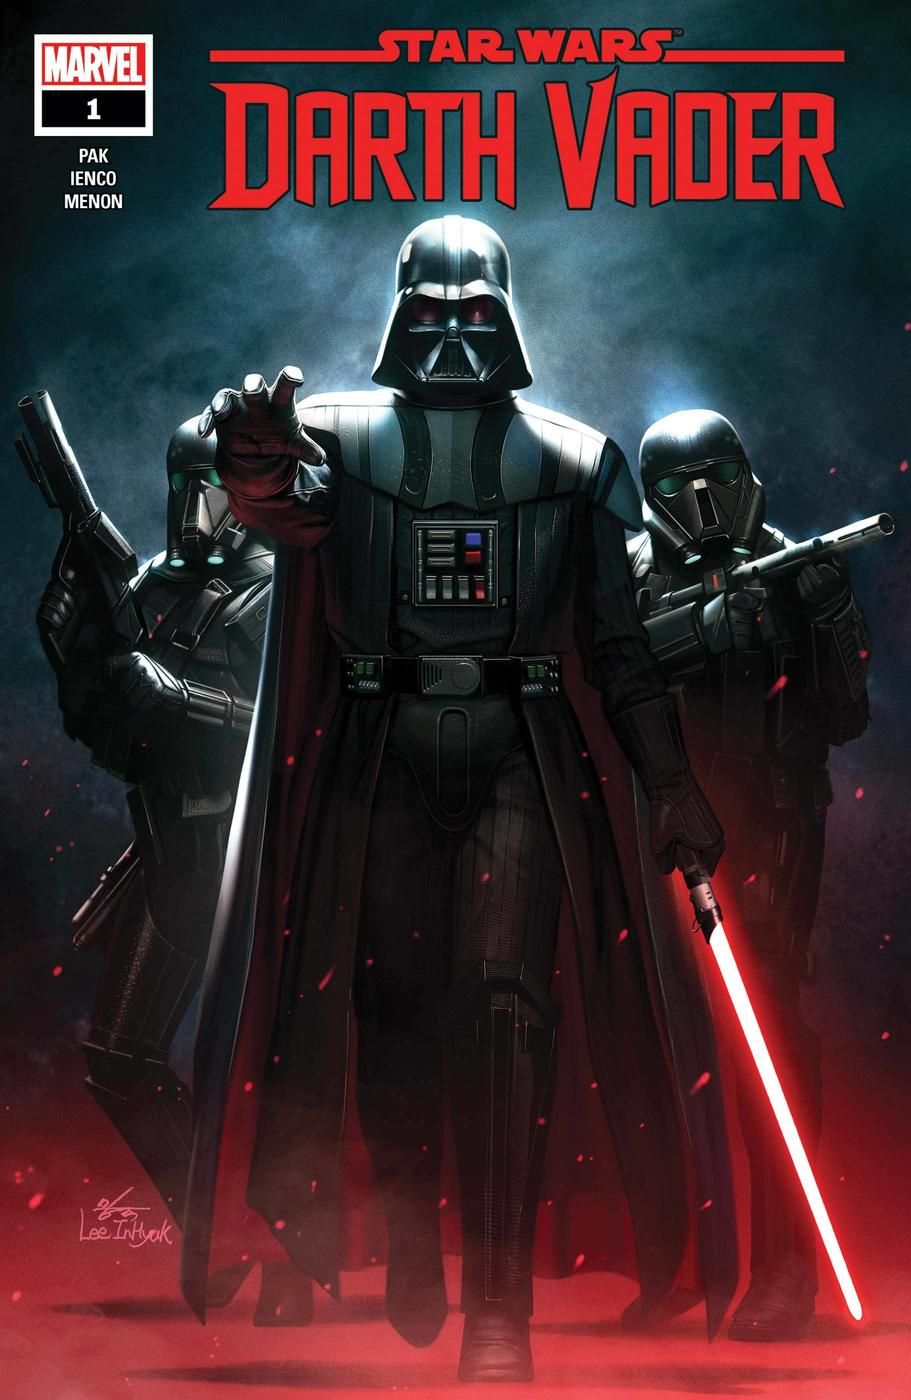 STAR WARS: DARTH VADER #1 cover by In-Hyuk Lee